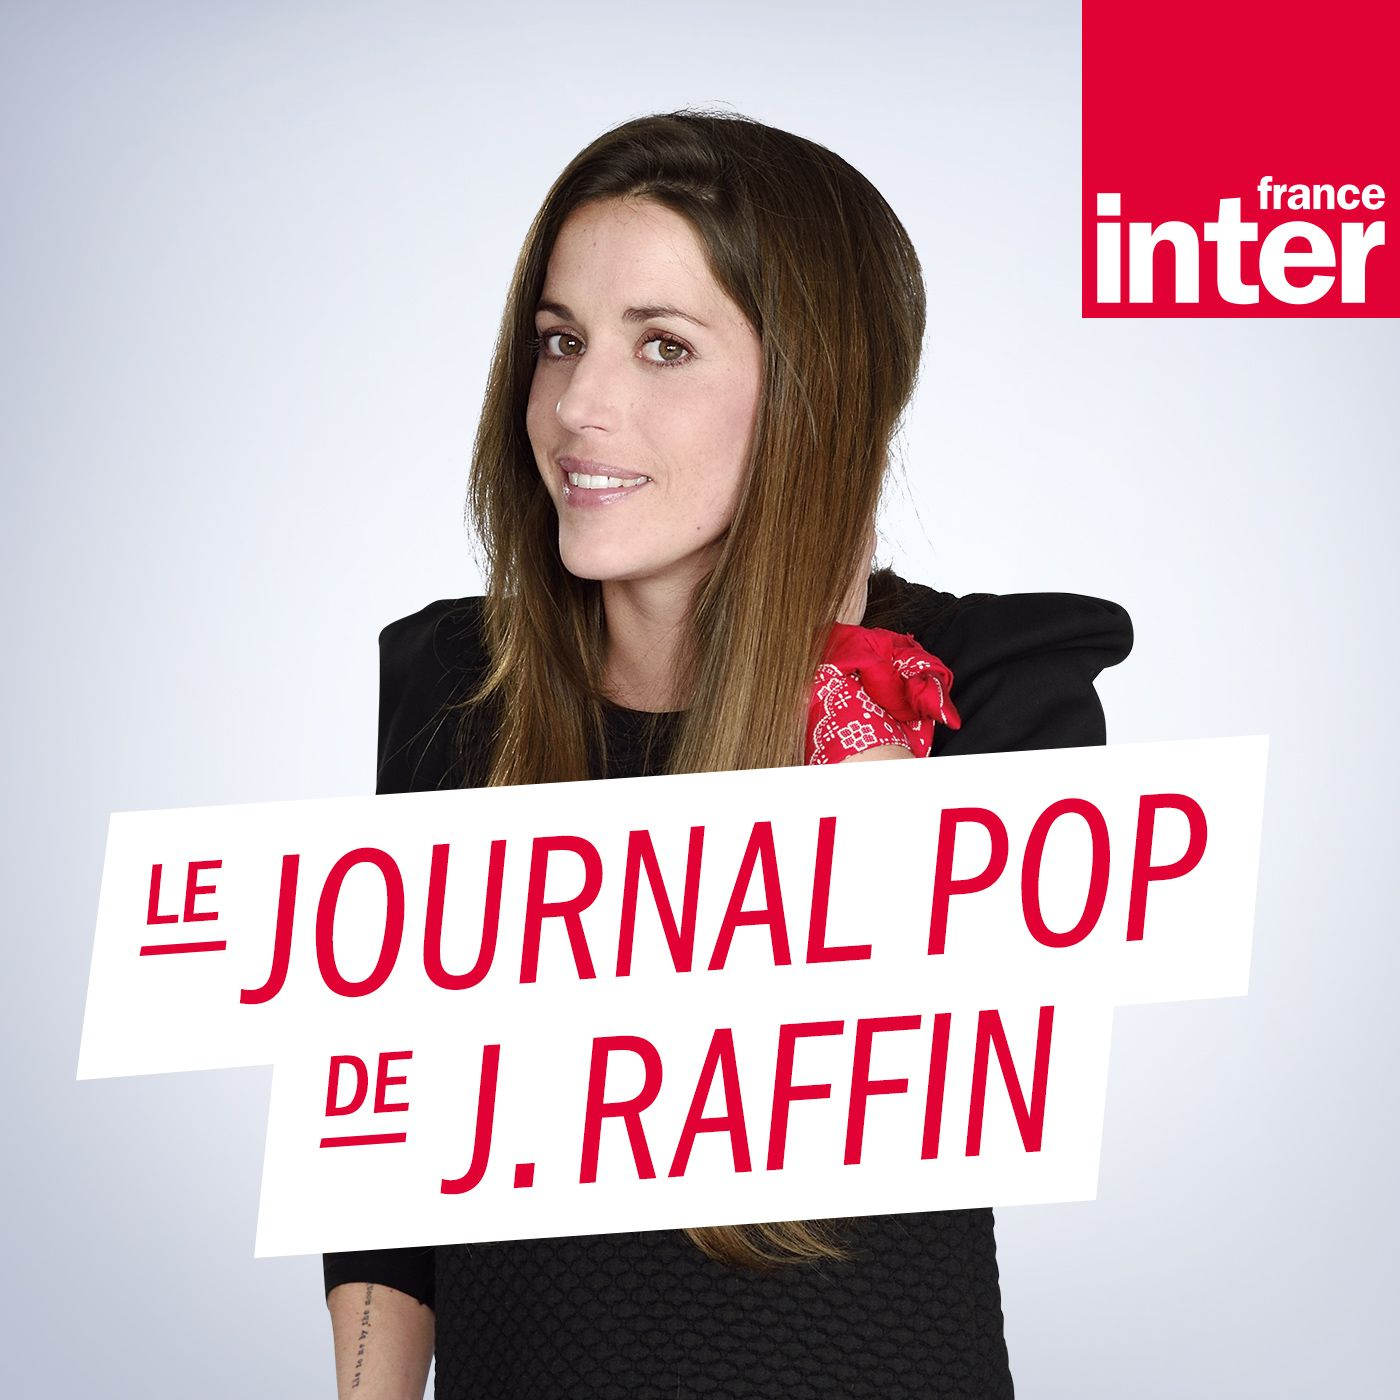 La chronique de Joy Raffin 14.04.2019